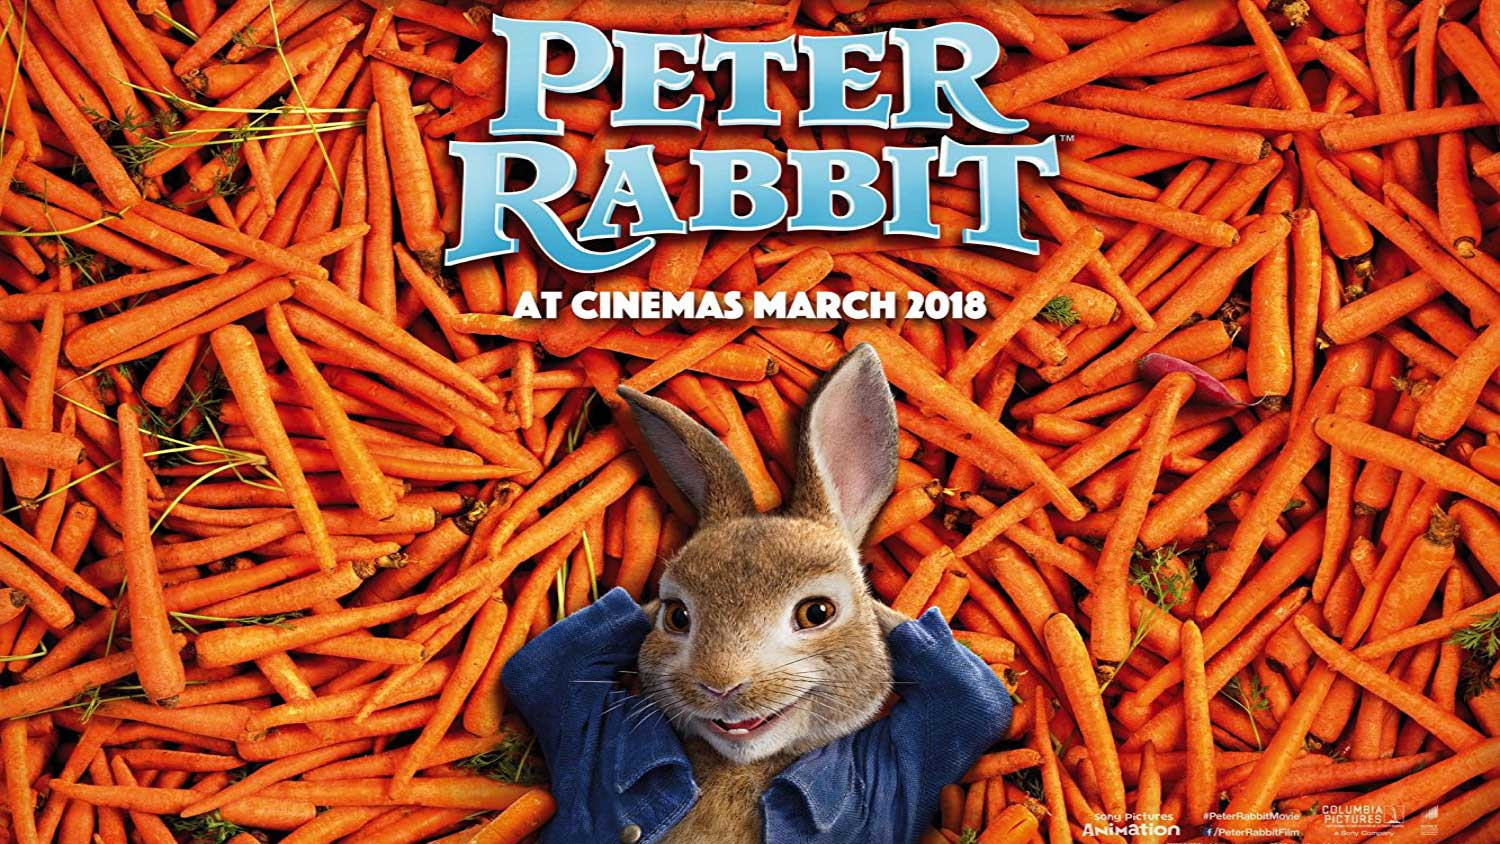 Peter Rabbit Review – Not A Fluffy Bunny Story - OC Movie Reviews - Movie Reviews, Movie News, Documentary Reviews, Short Films, Short Film Reviews, Trailers, Movie Trailers, Interviews, film reviews, film news, hollywood, indie films, documentaries